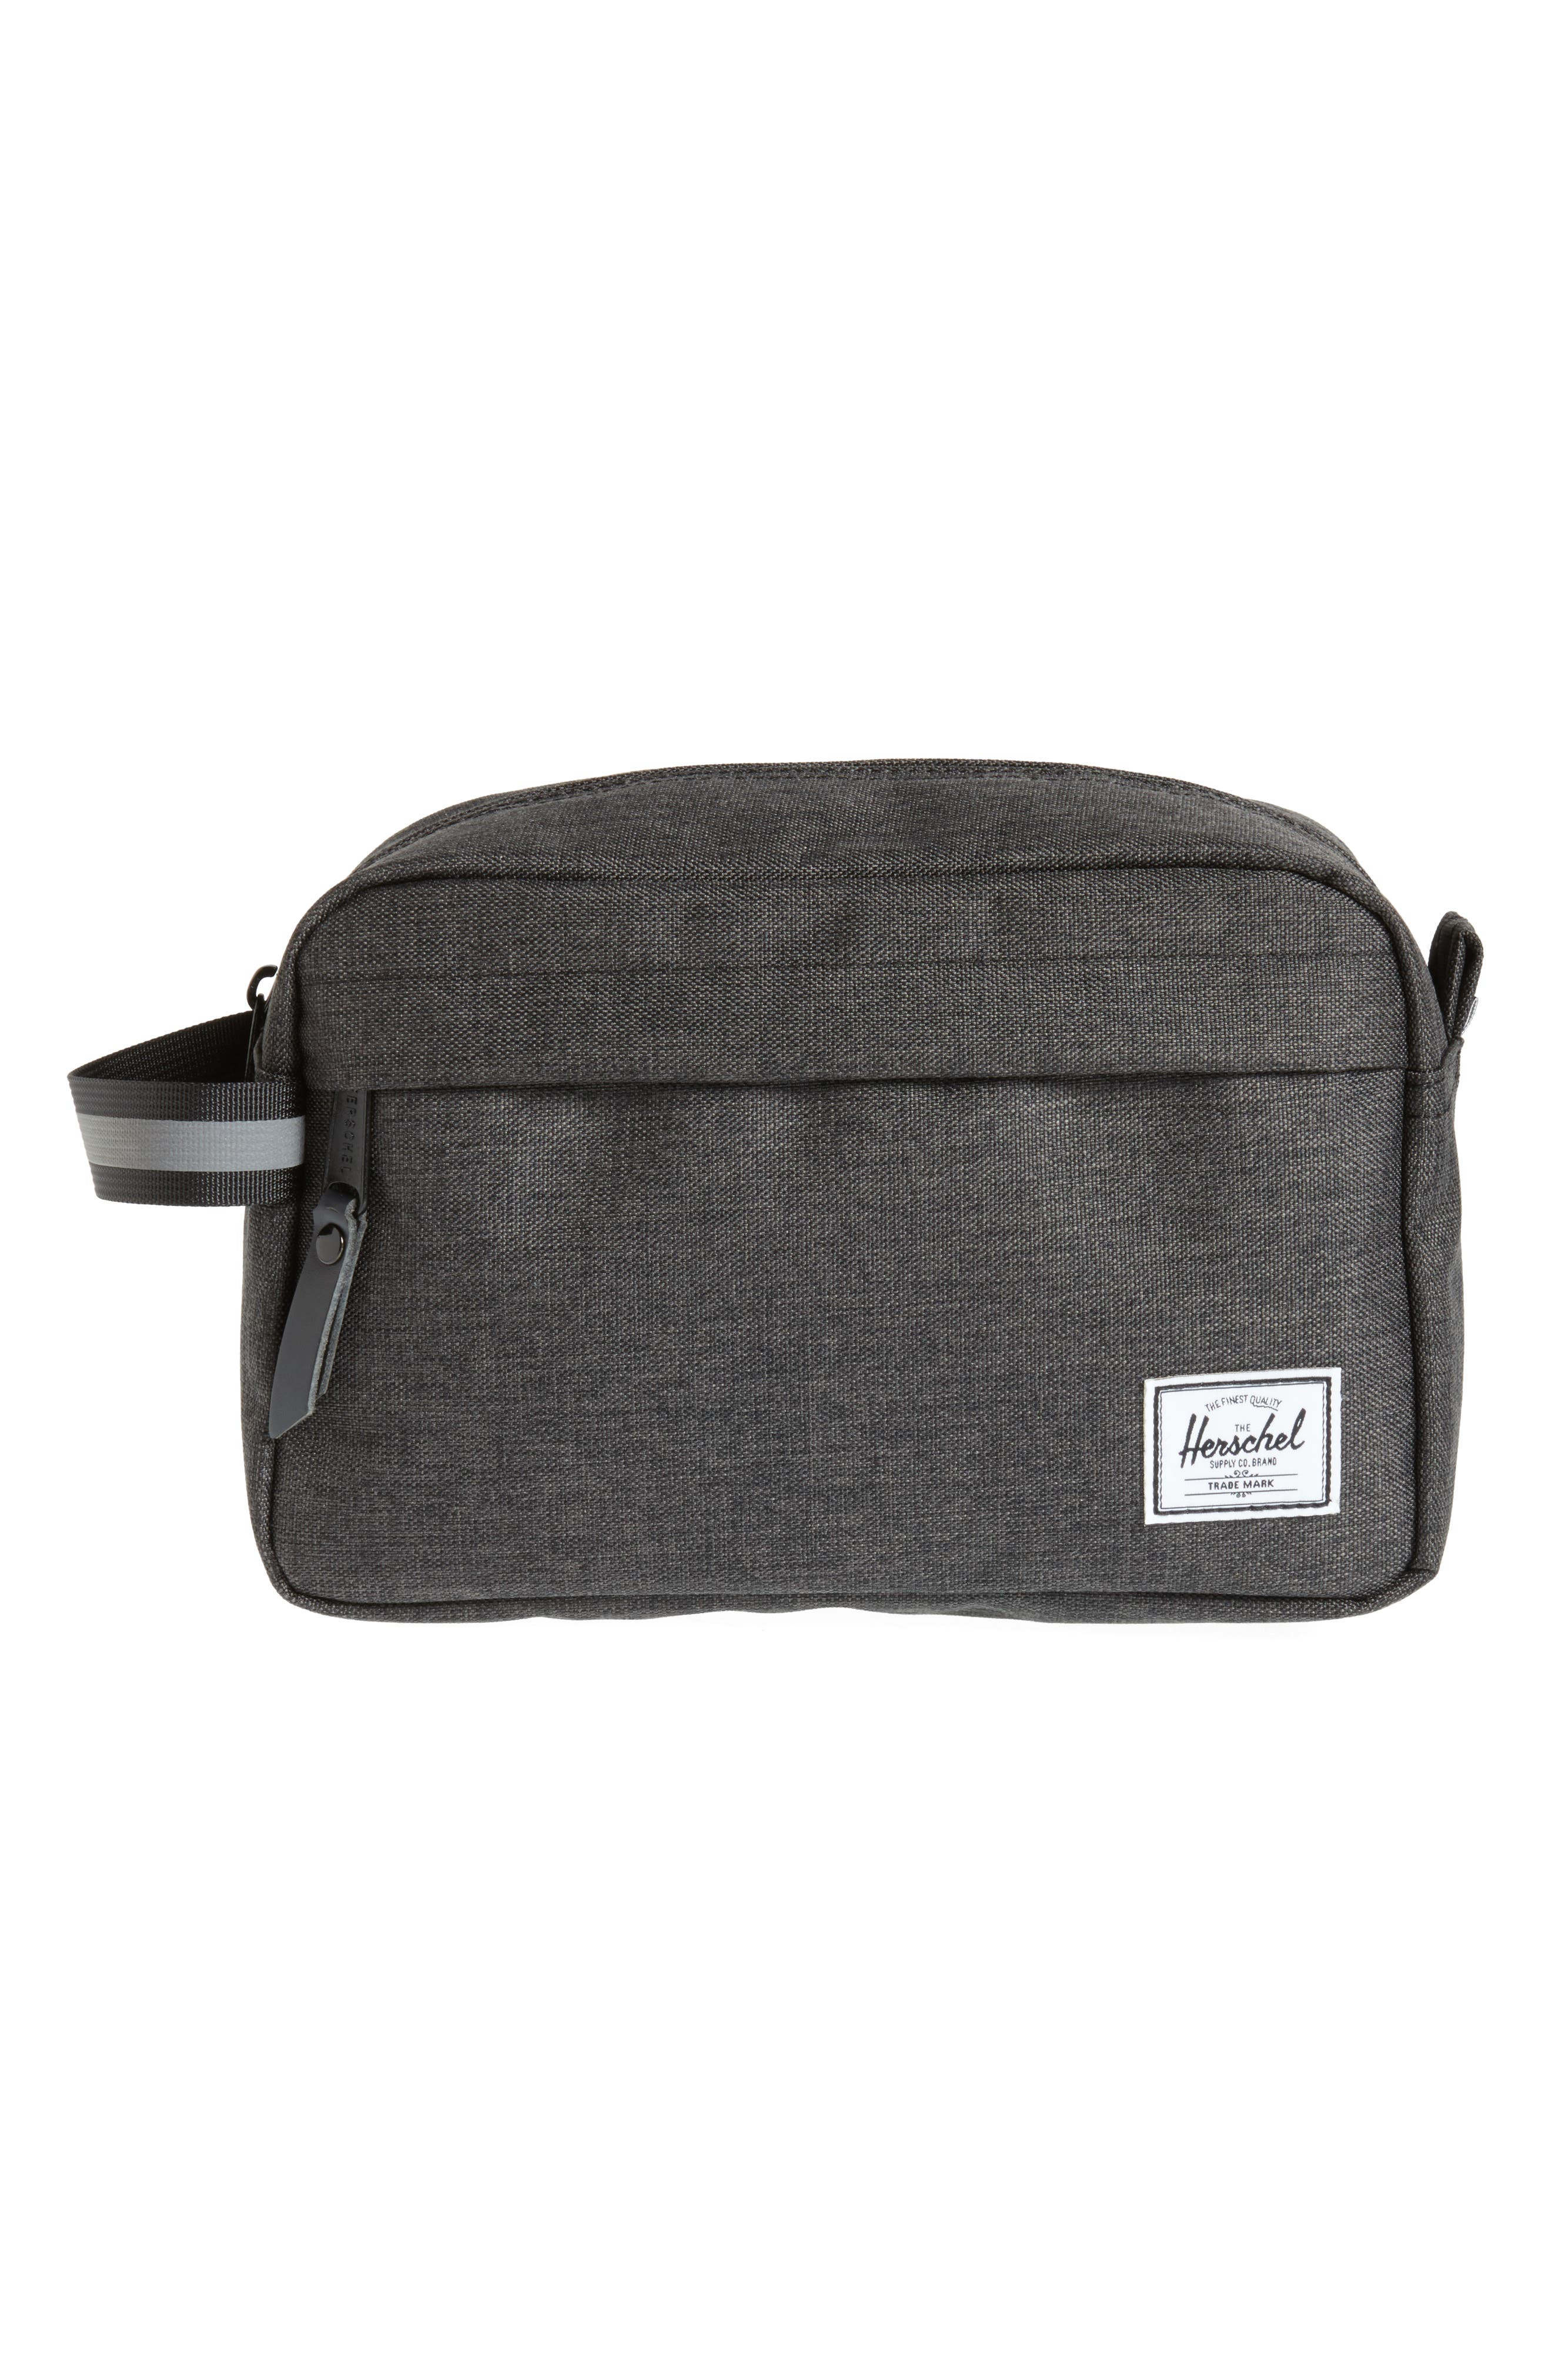 Chapter - Reflective Dopp Kit,                             Main thumbnail 1, color,                             Black Crosshatch/ Reflective